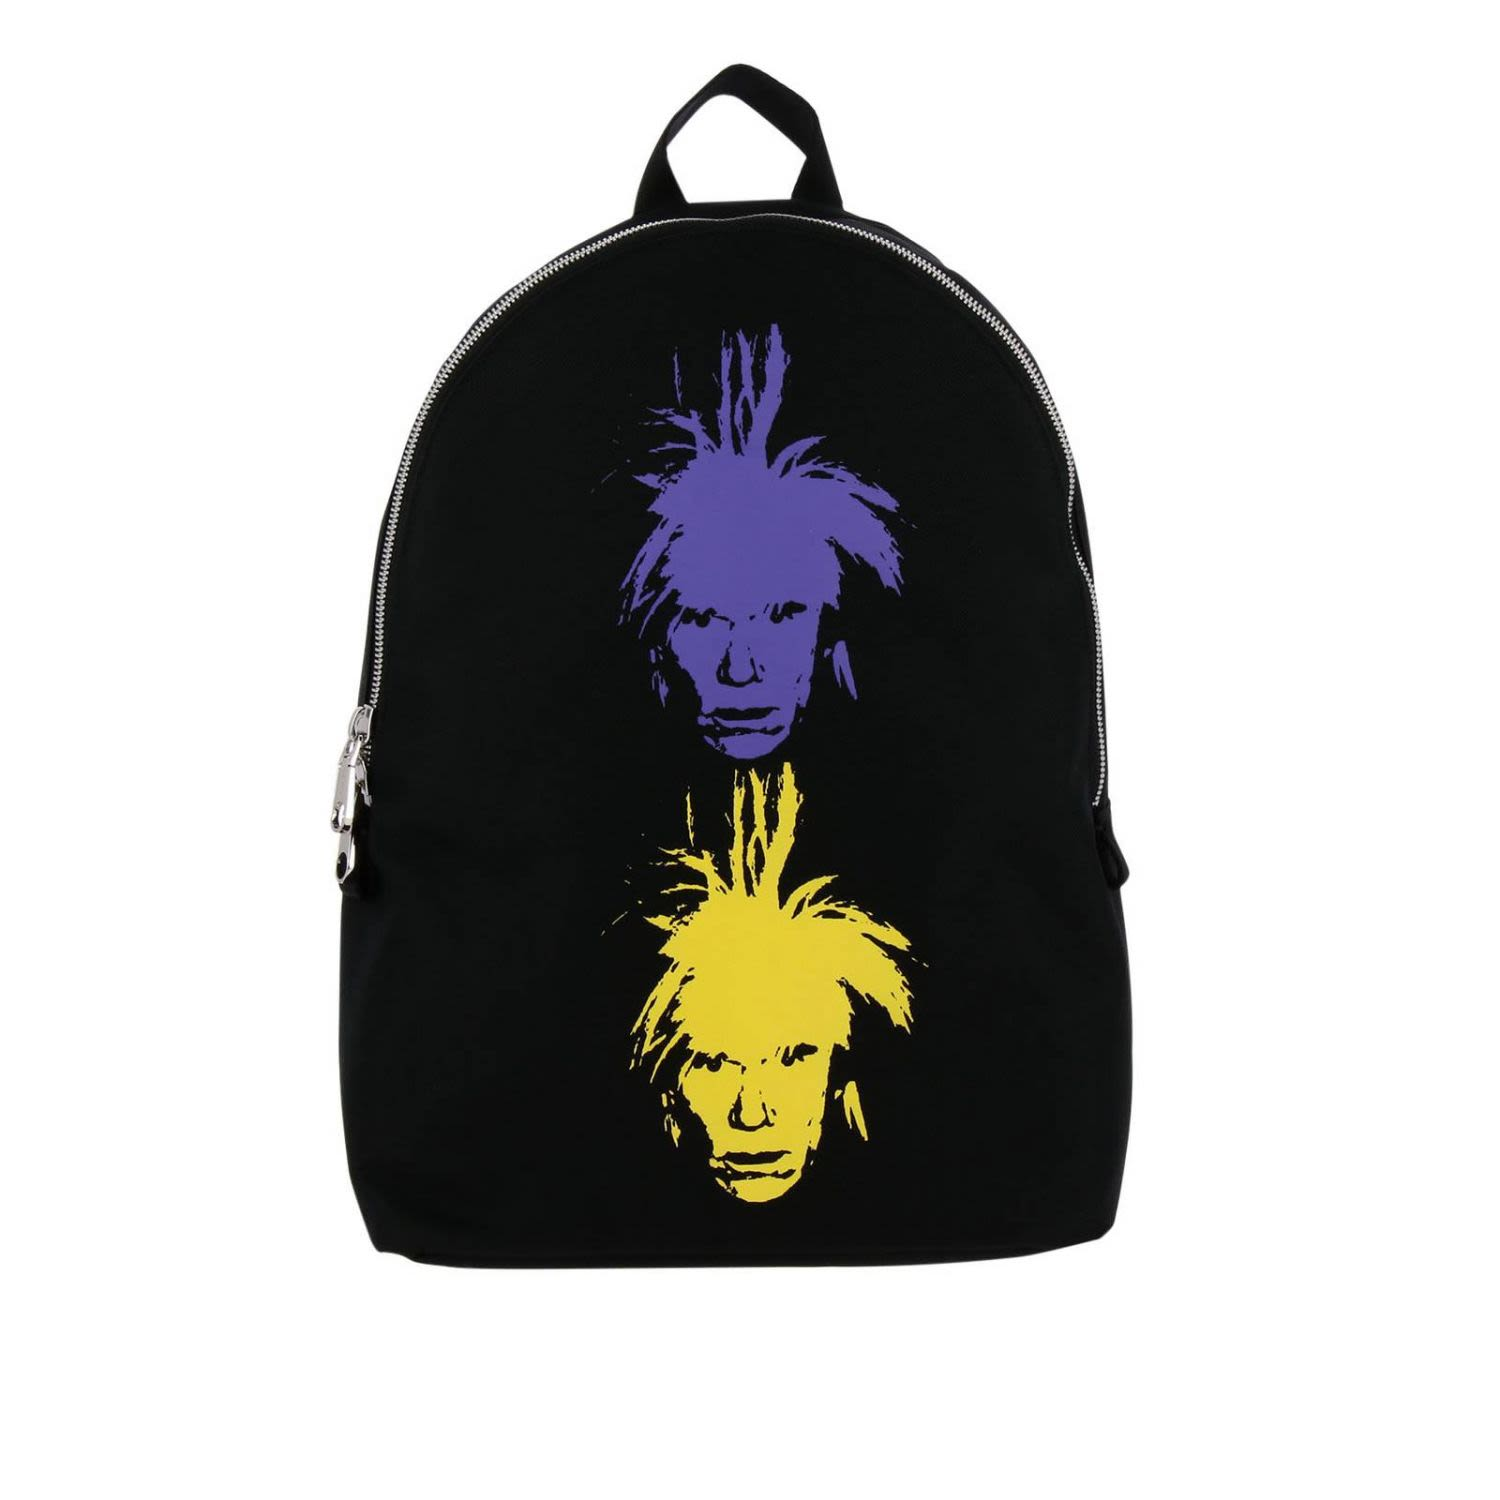 Backpack Shoulder Bag Women Ckj Warhol Self-Portrait, Black